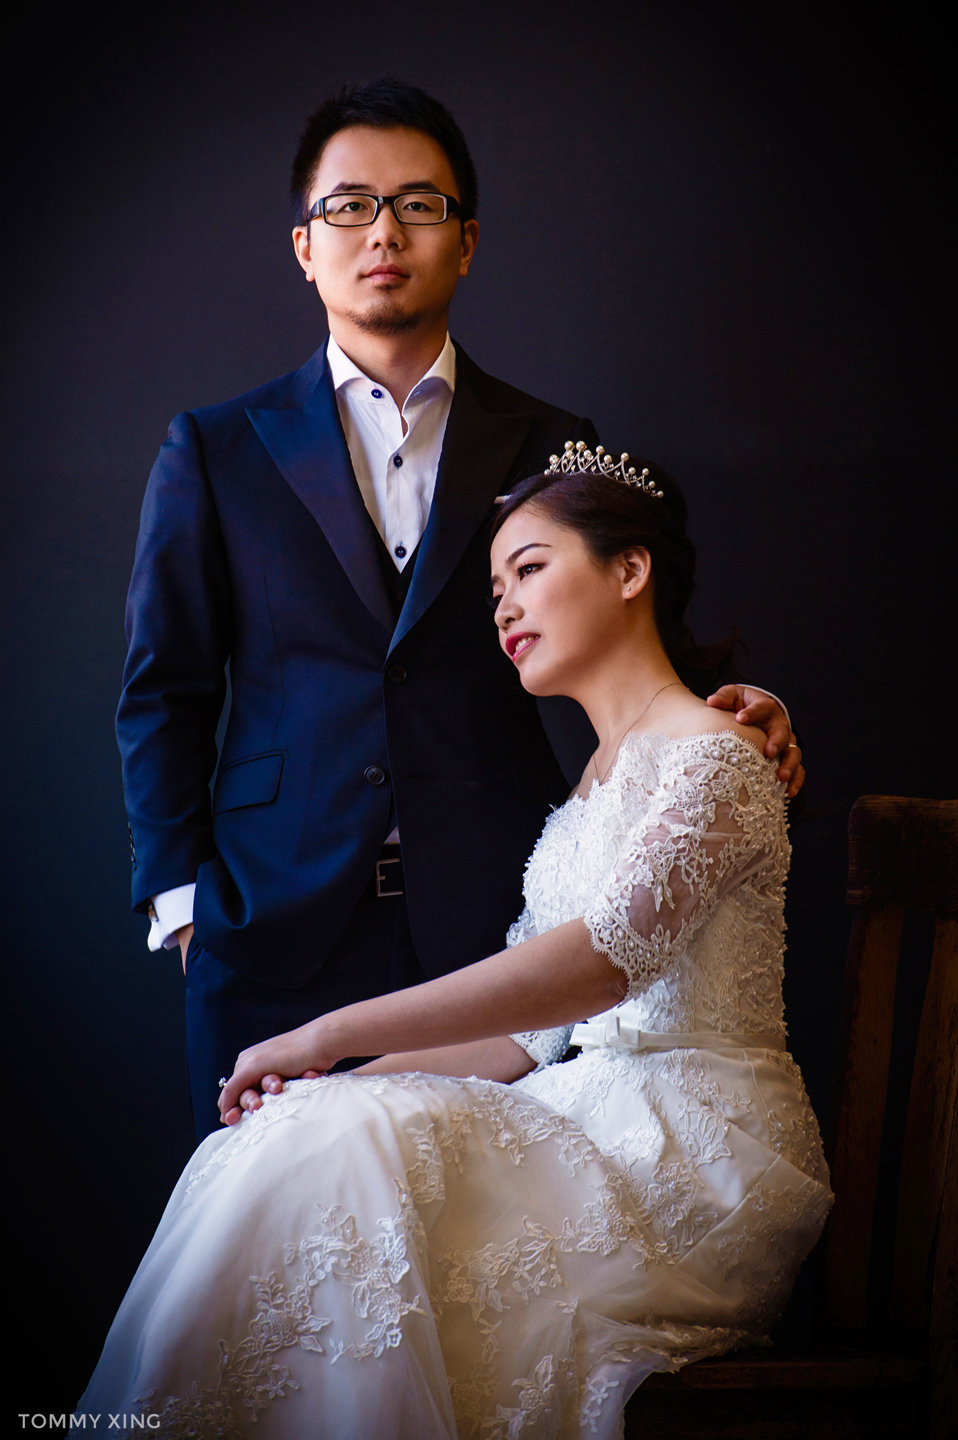 San Francisco Wedding Photo 旧金山湾区婚纱照 Tommy Xing Photography 洛杉矶 07.jpg